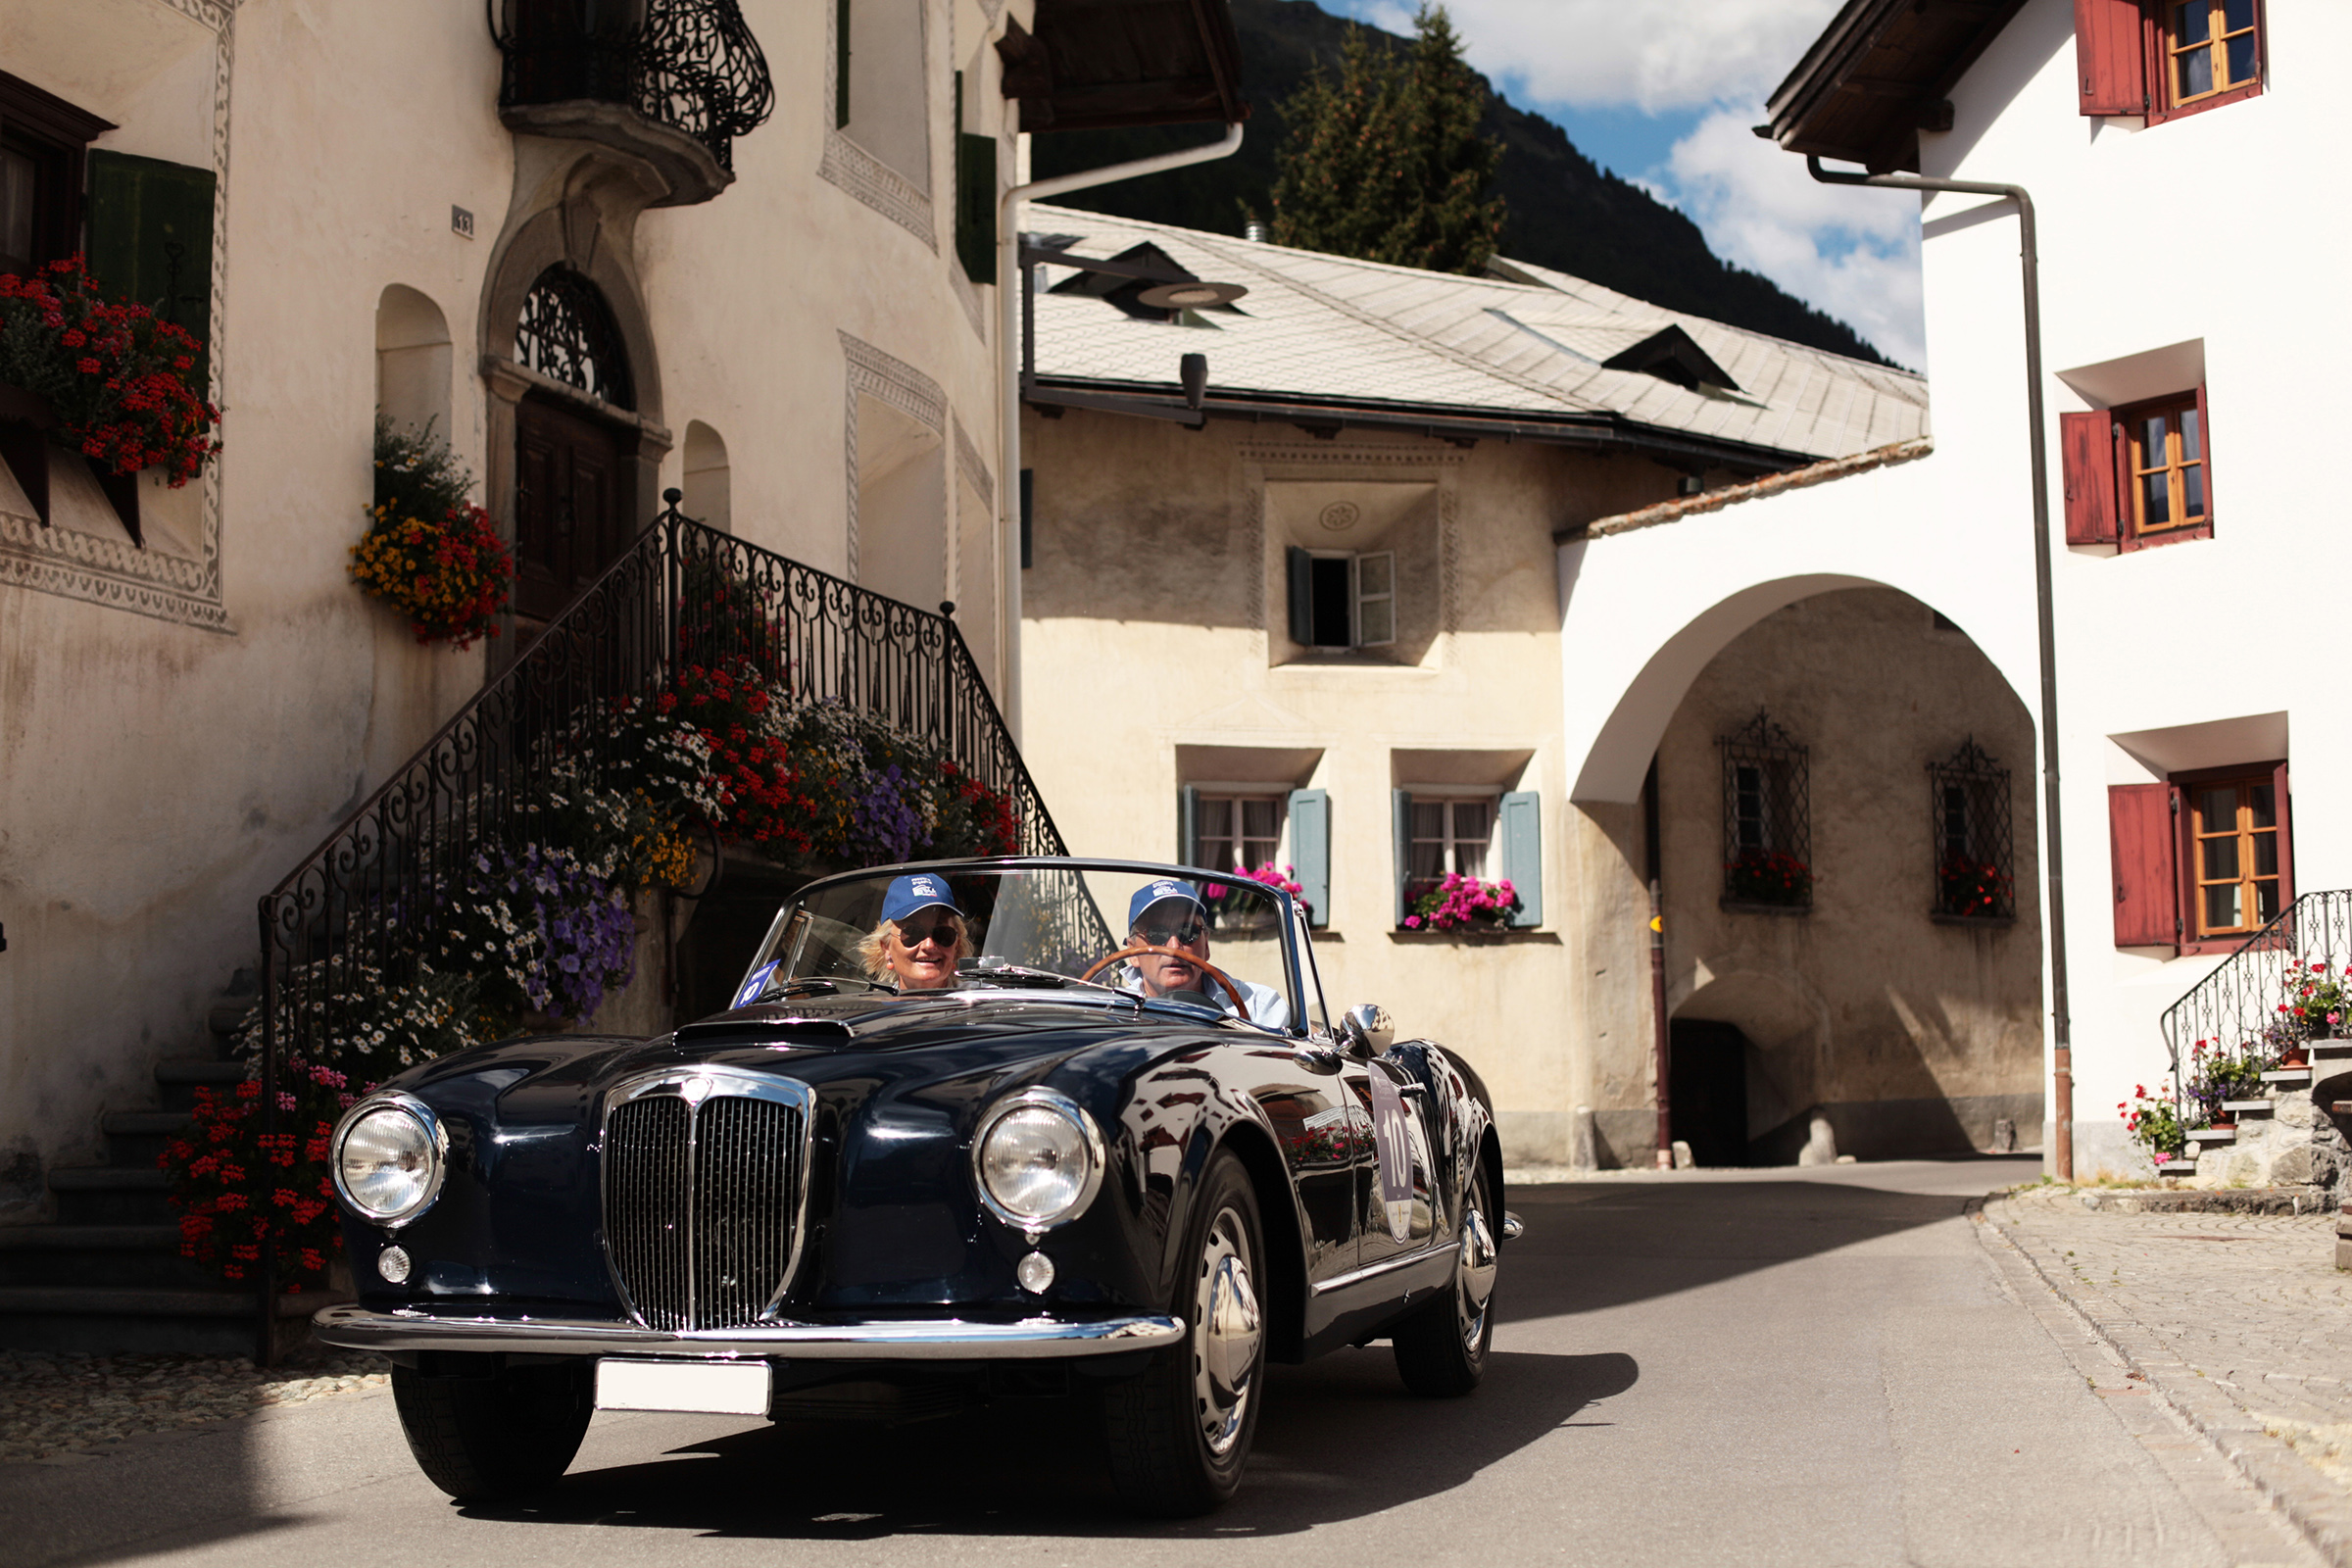 Stylish excursions with old-timer cars